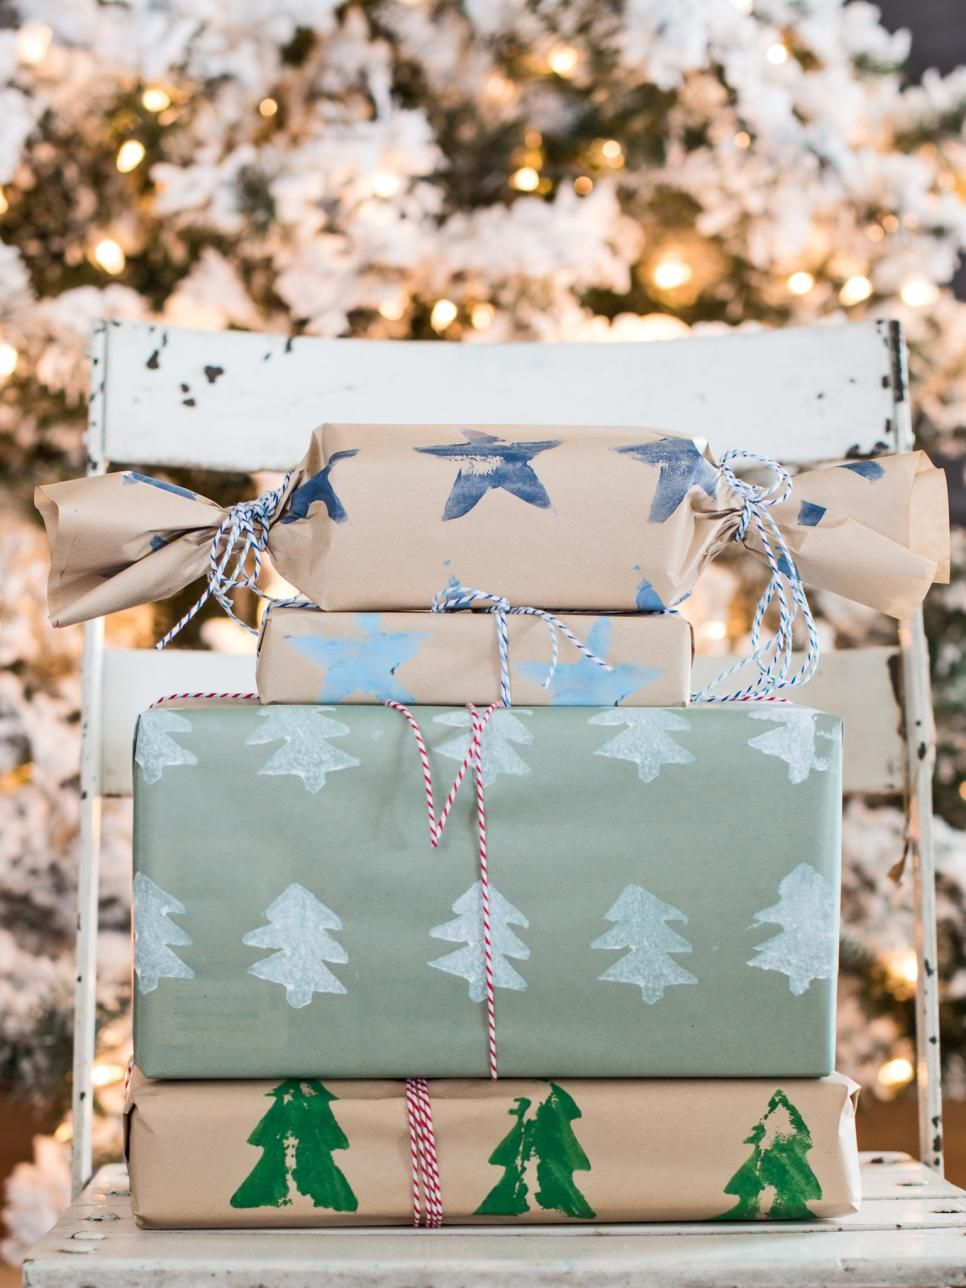 50 Christmas Gift Wrapping Ideas | Pinterest | Clever, Christmas ...